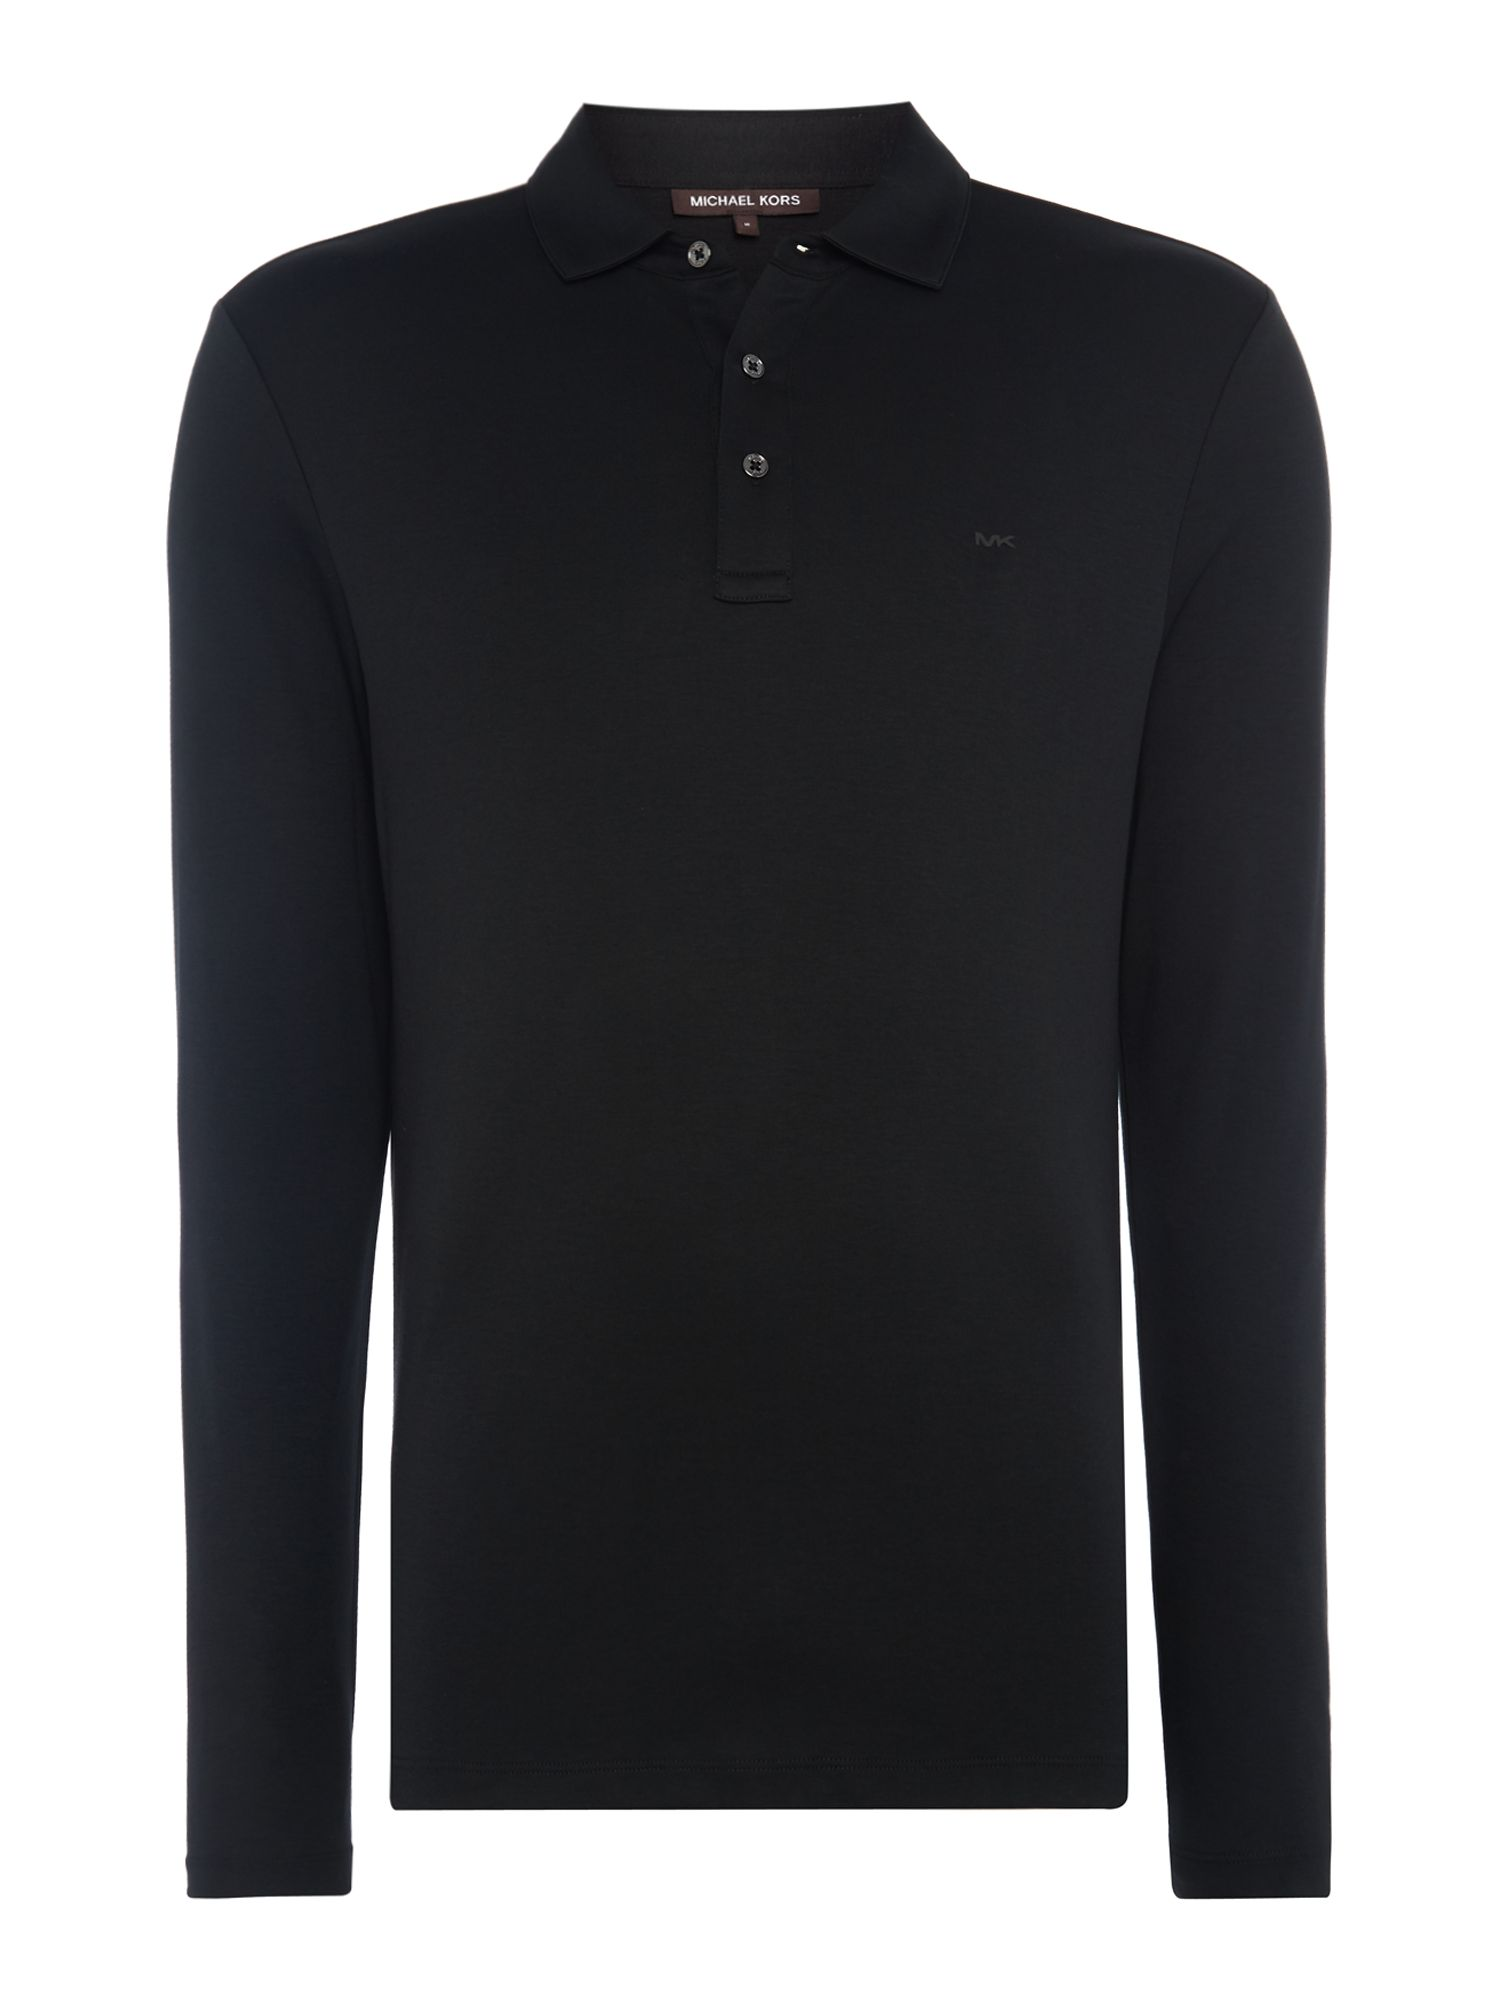 Men's Michael Kors Long Sleeve Slim Fit Polo Shirt, Black